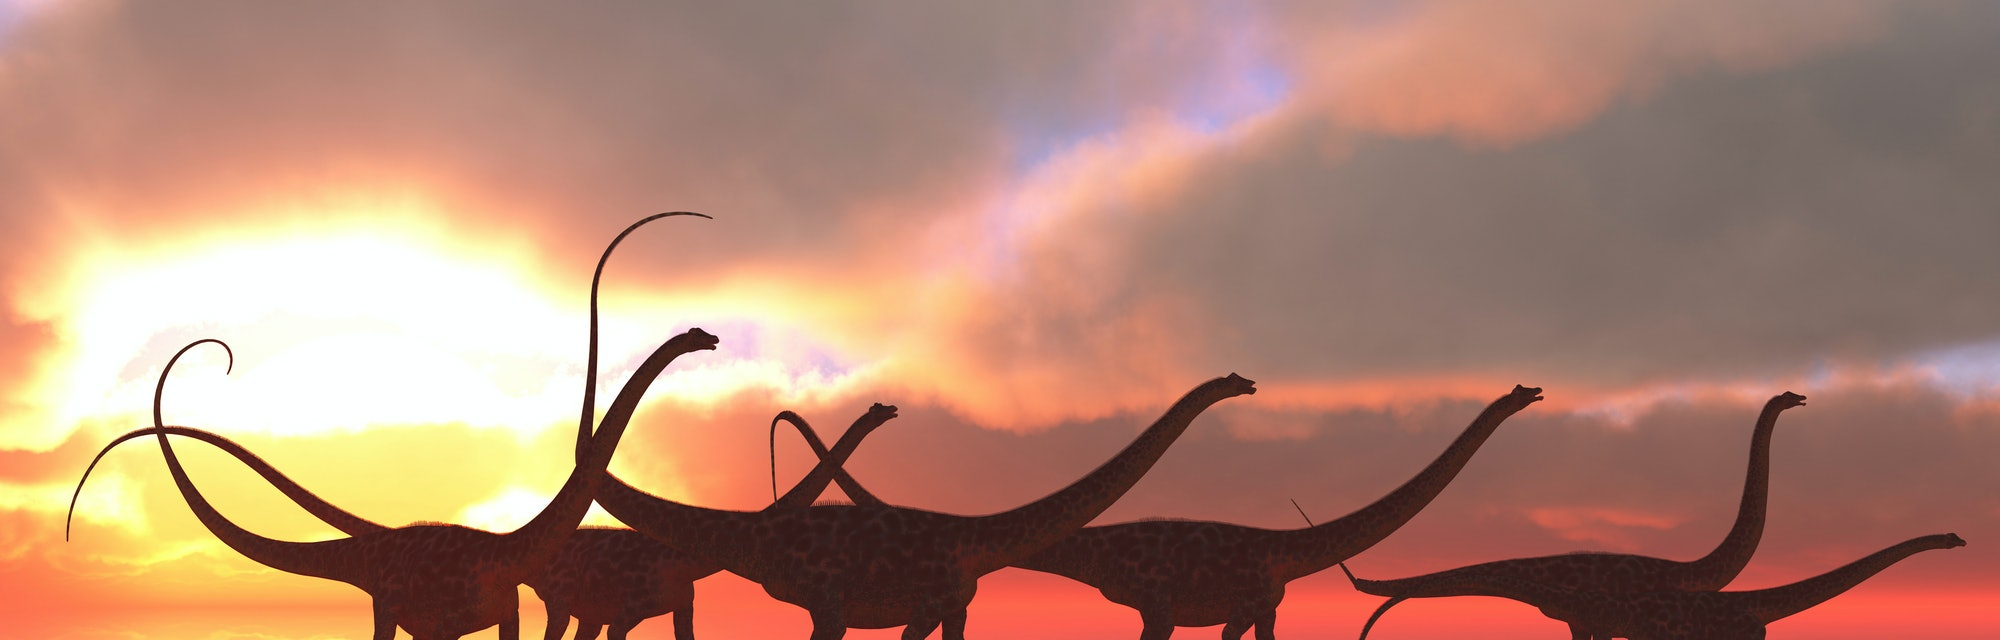 A Diplodocus dinosaur herd wades through shallow water on a lake that reflects their shadows and clo...